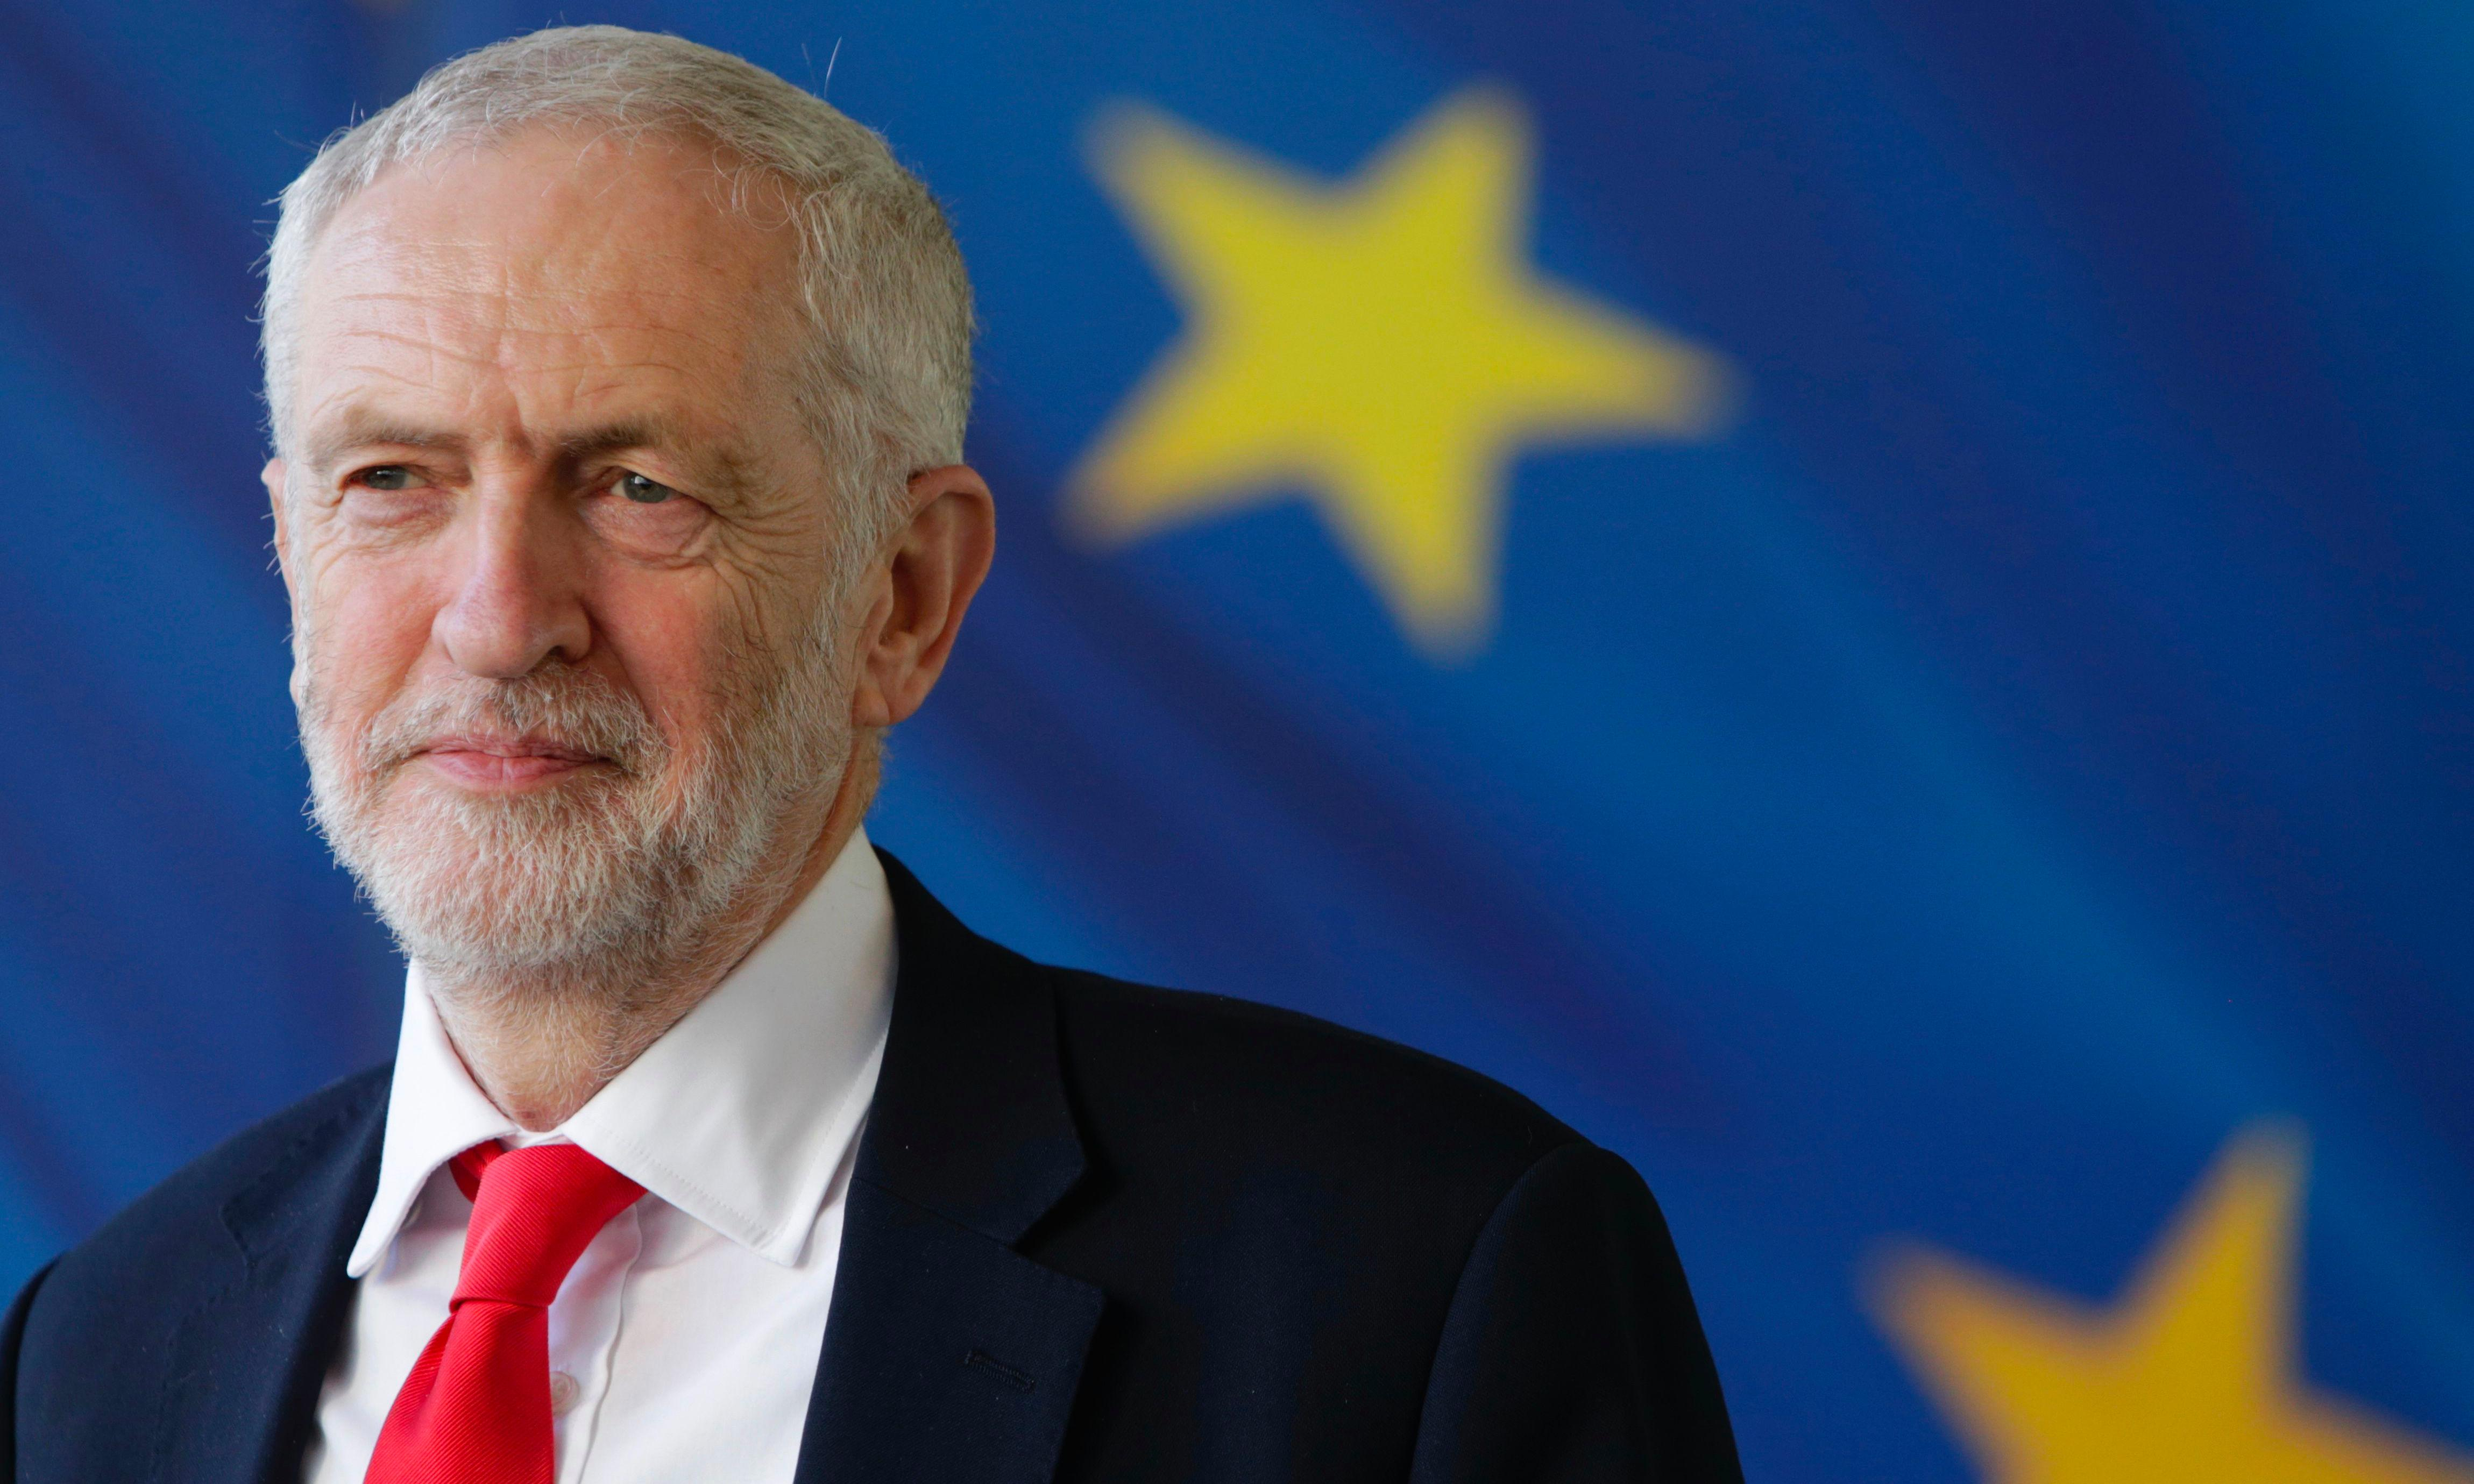 Corbyn not ruling out revoking article 50 to avoid no-deal Brexit